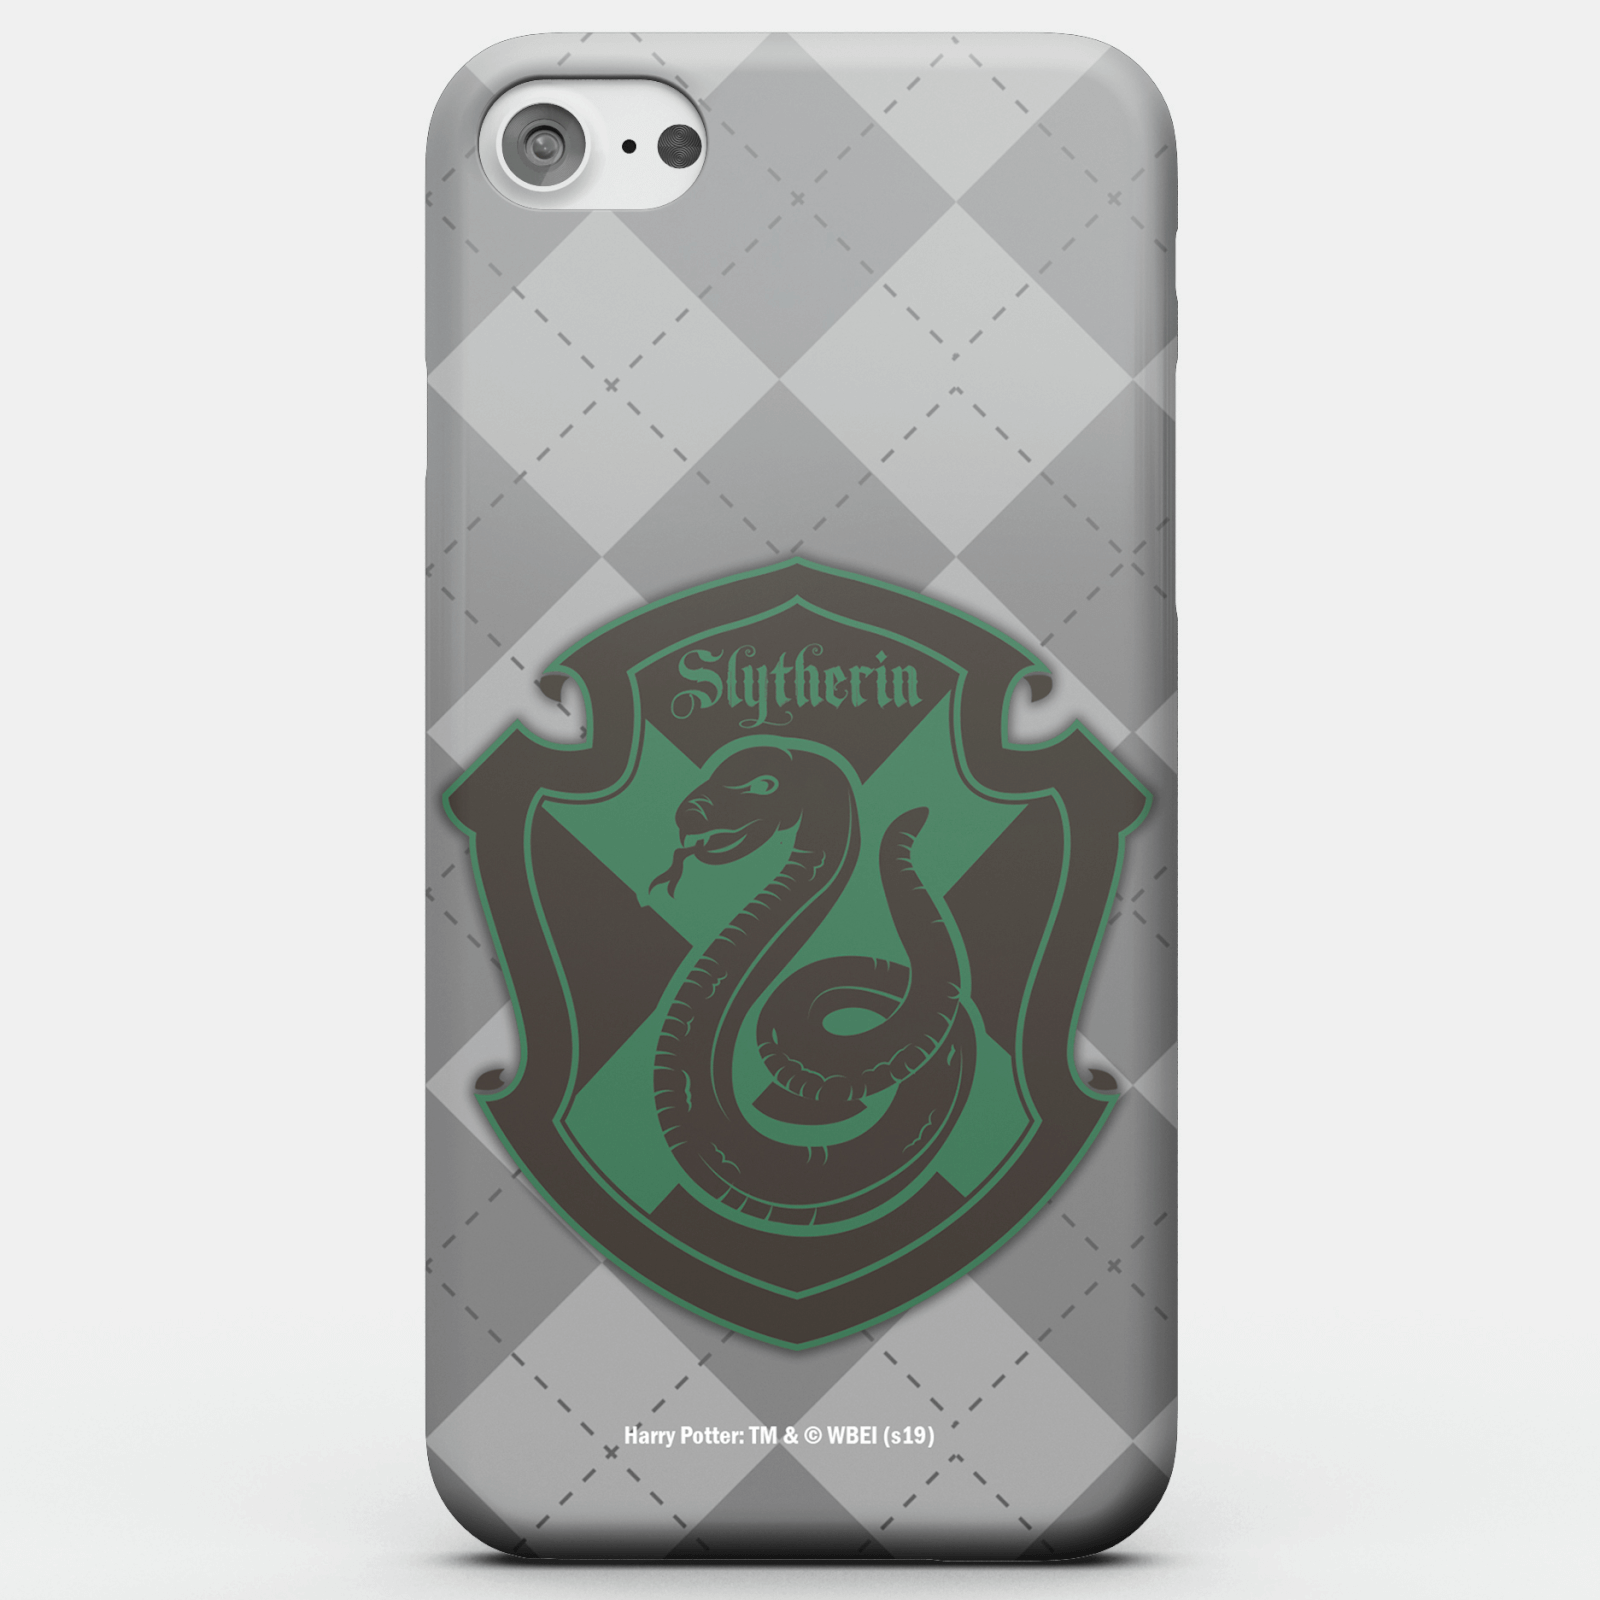 Funda Móvil Harry Potter Slytherin Crest para iPhone y Android - iPhone 11 - Carcasa rígida - Mate de Harry Potter